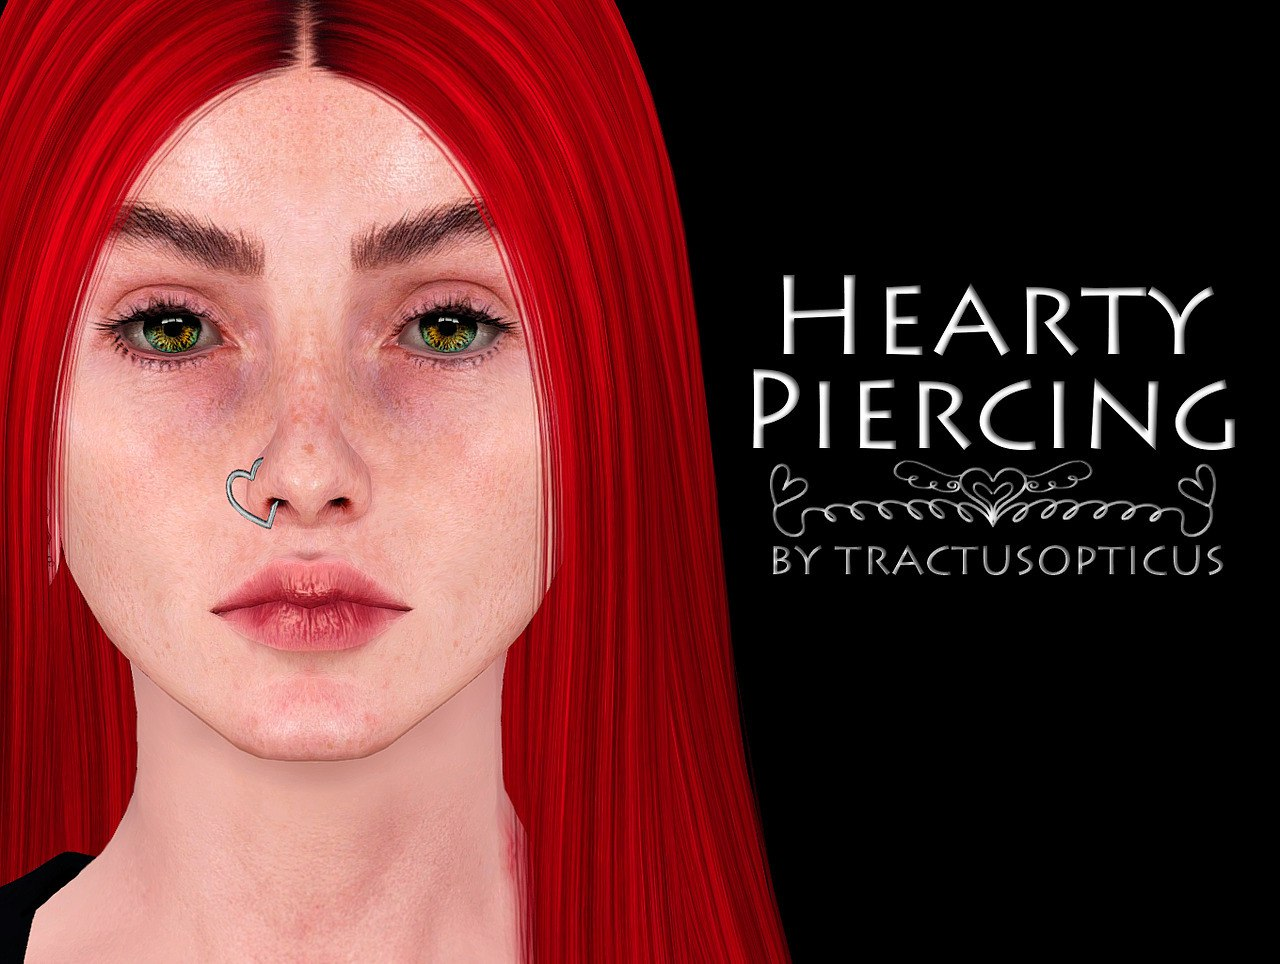 Hearty piercing by tractusopticus